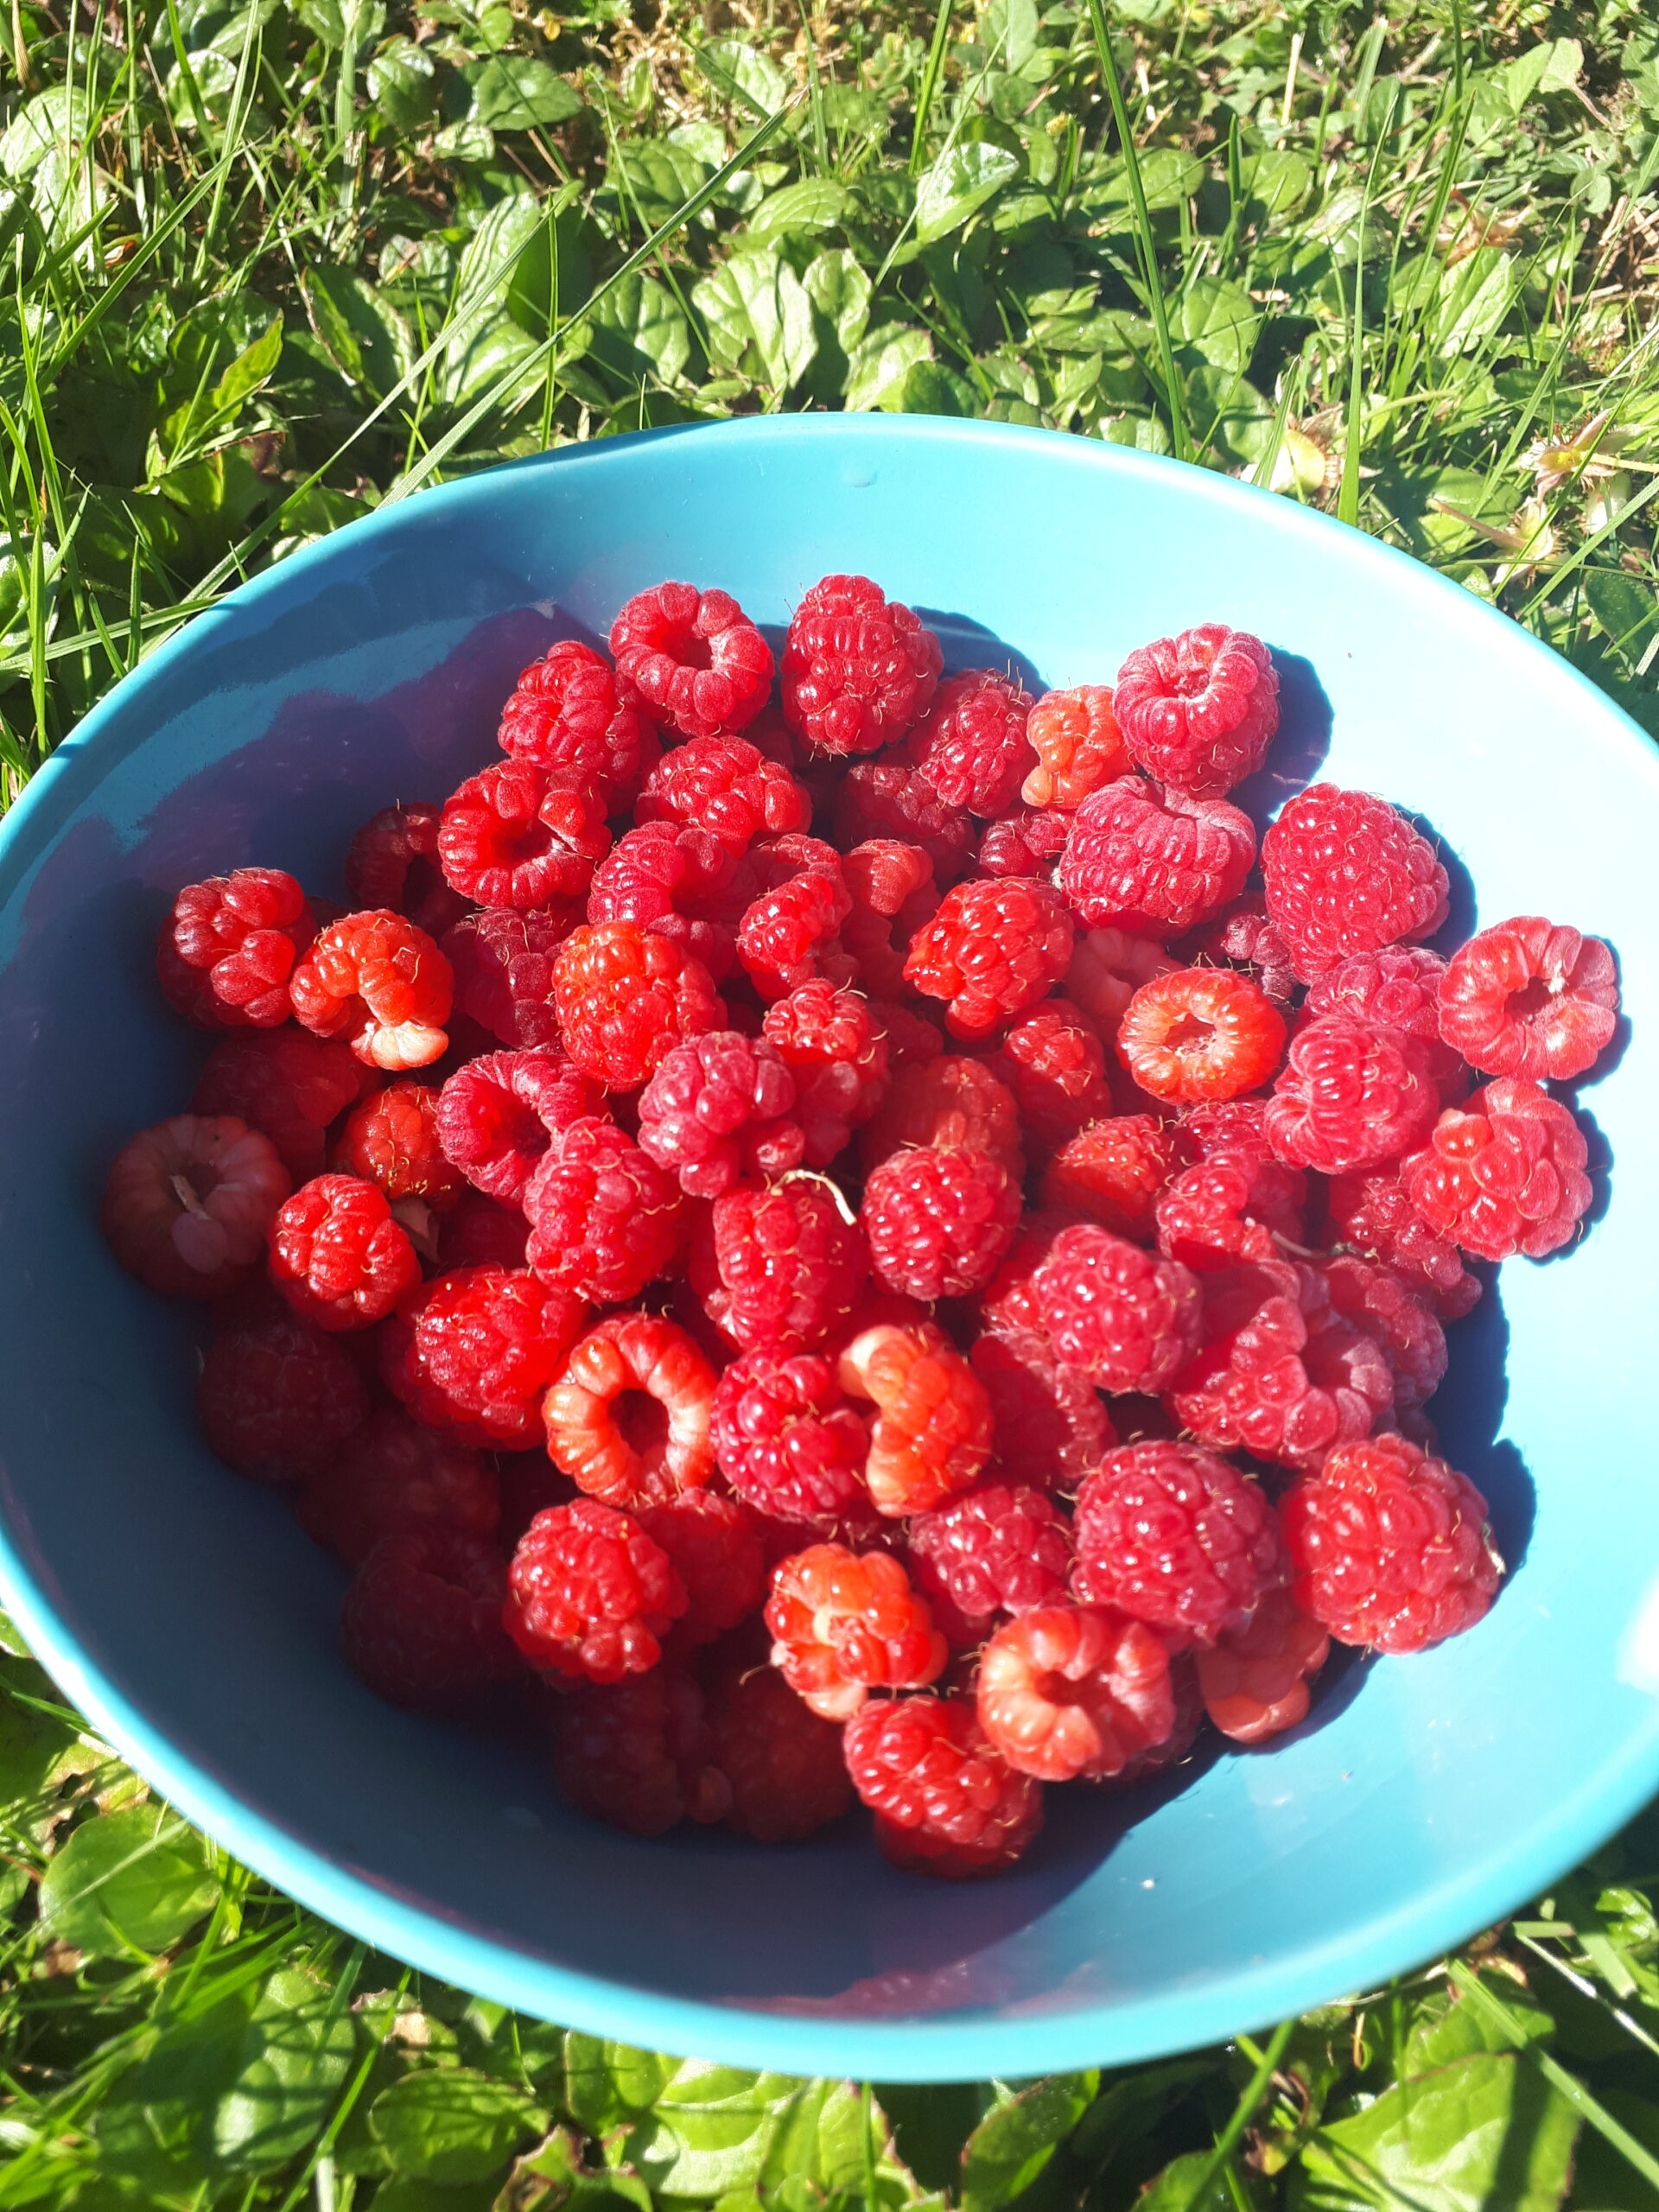 Bowl with freshly picked raspberries